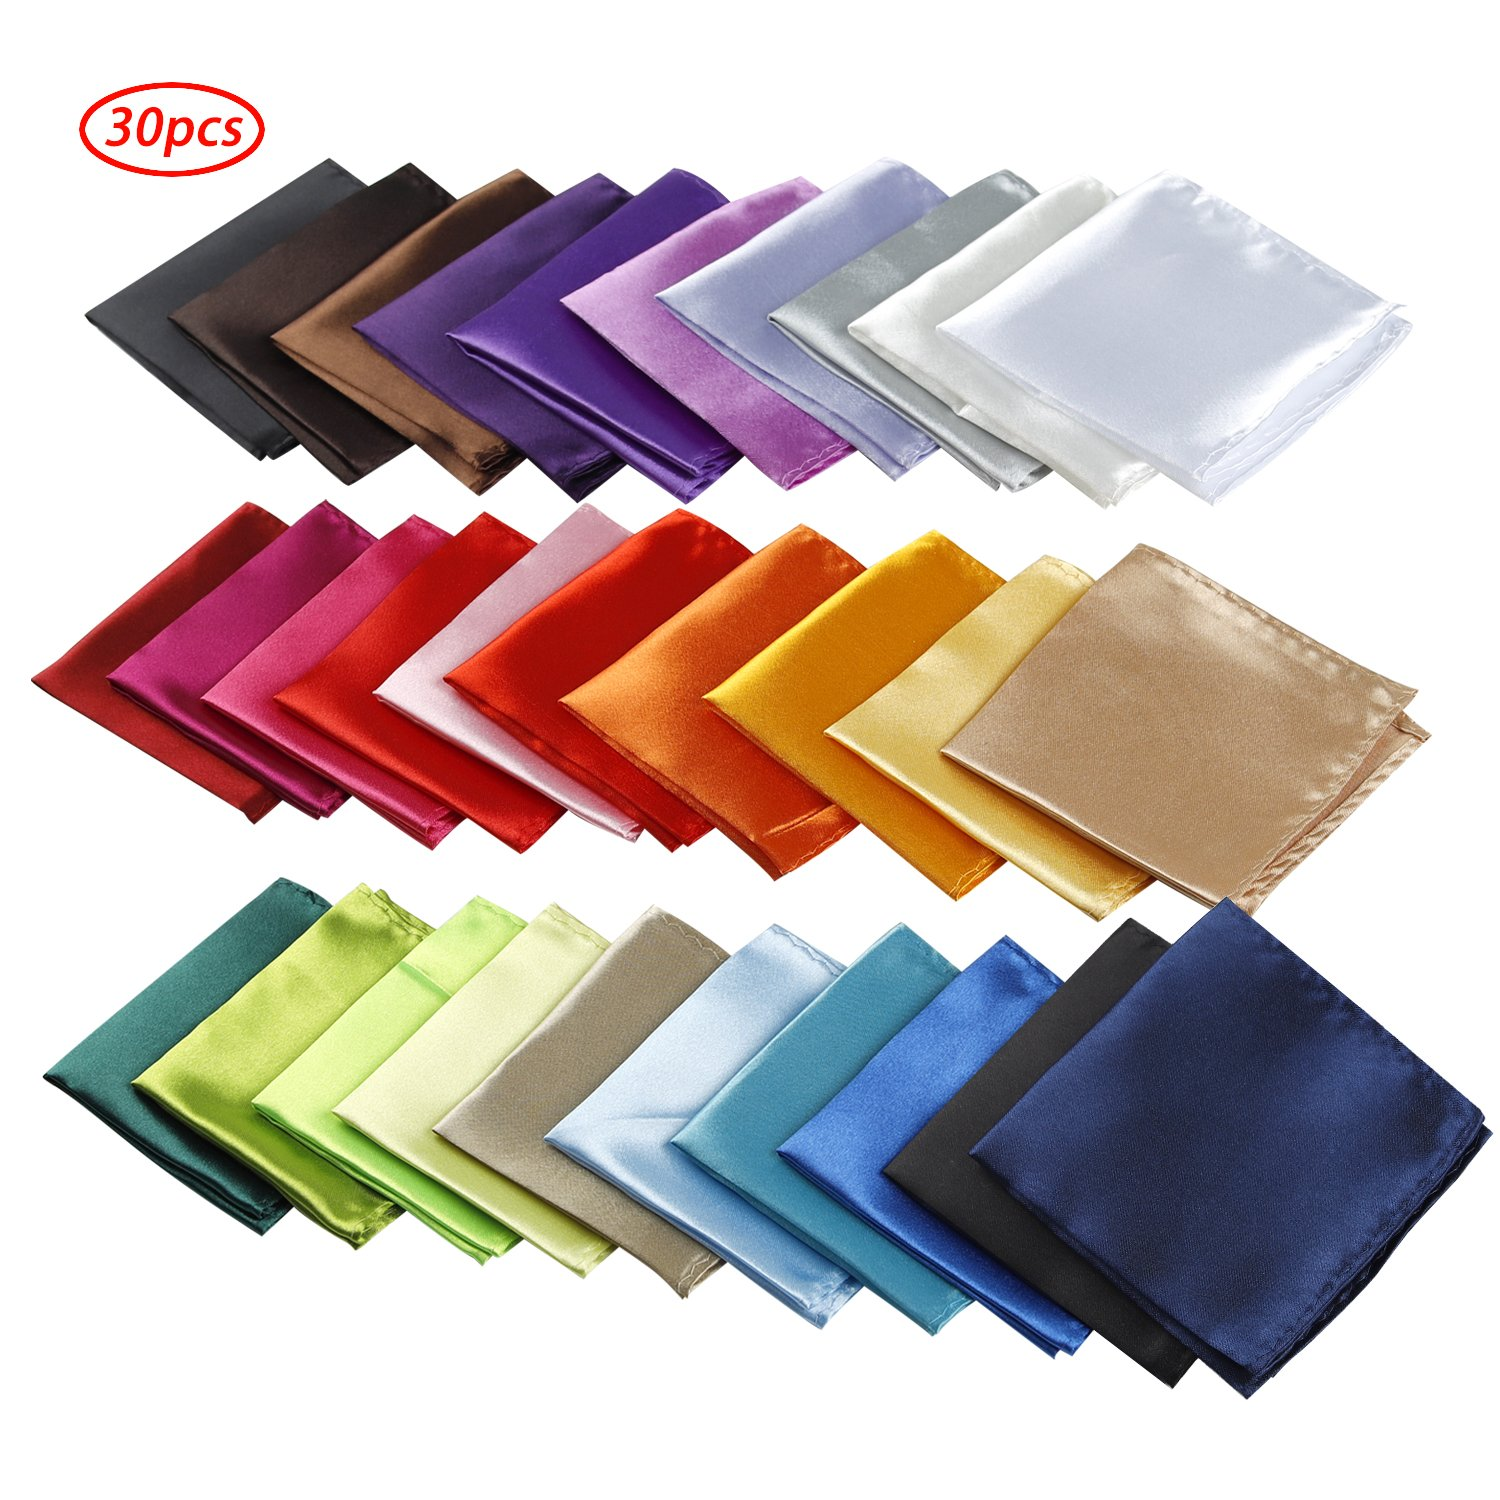 30 PCS Mens Pocket Squares Handkerchief For Wedding Party ( 30 Kinds of Colors)